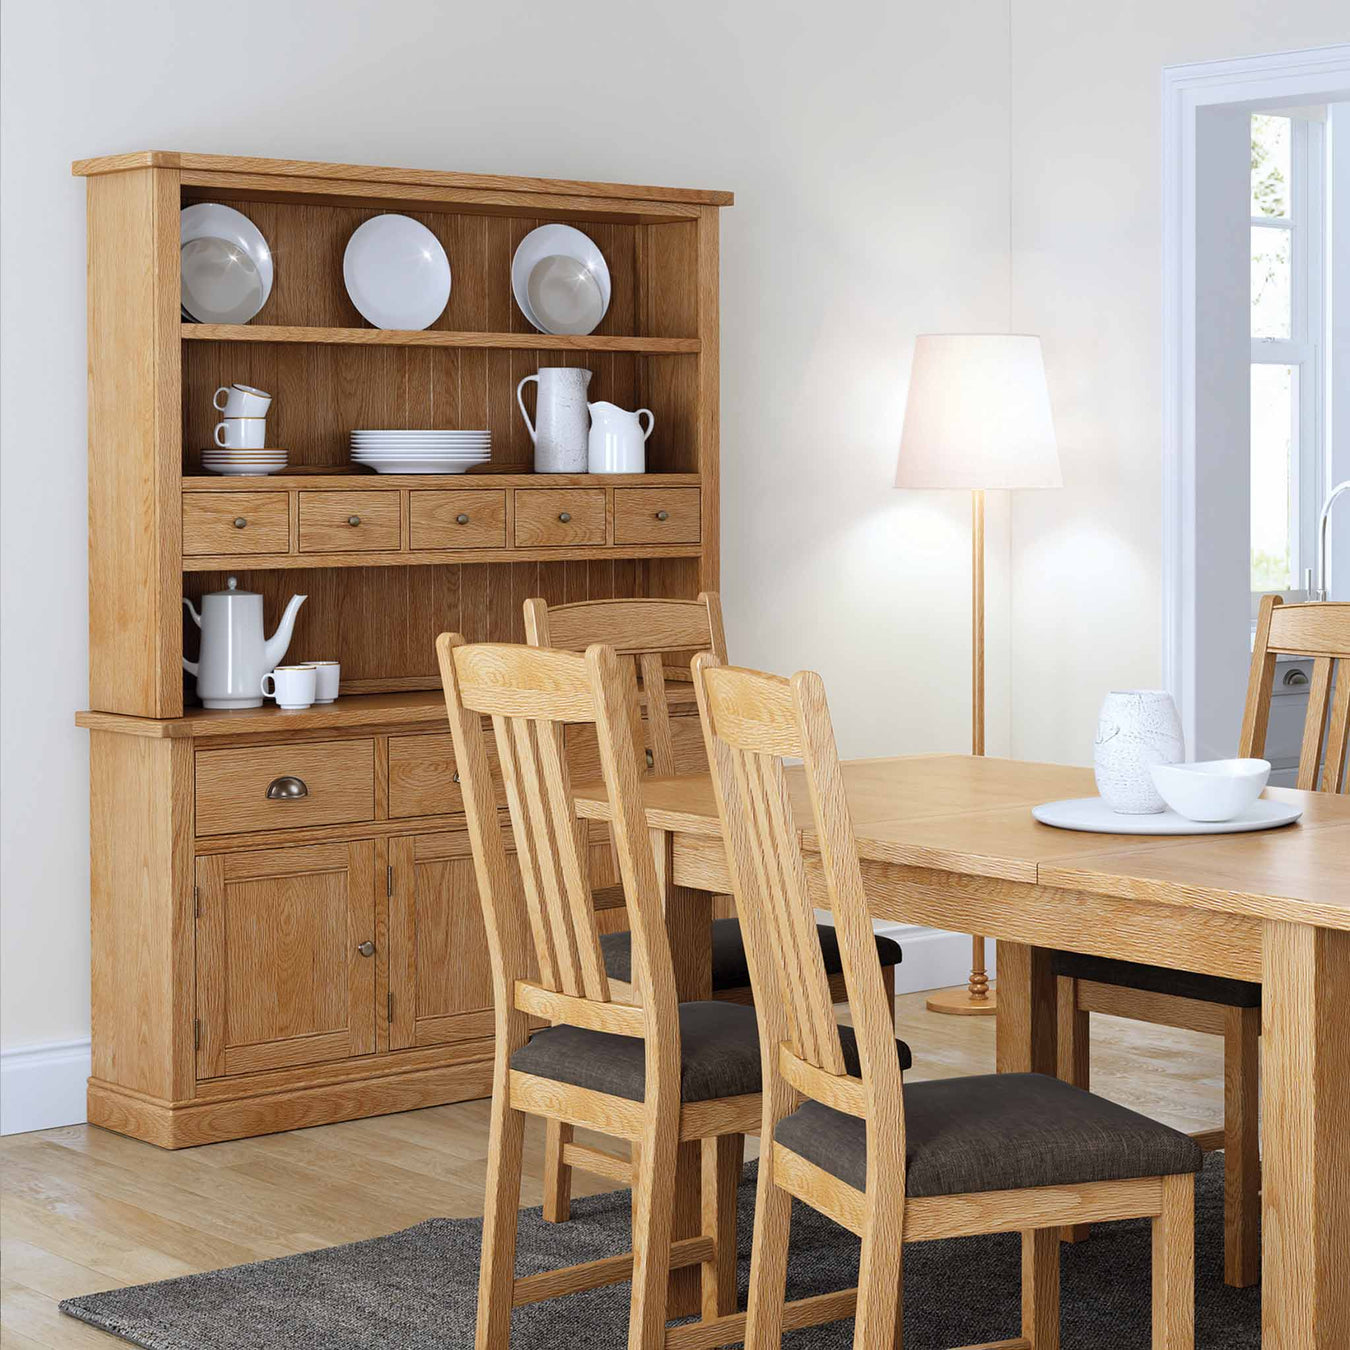 Oak and Wooden Dresser